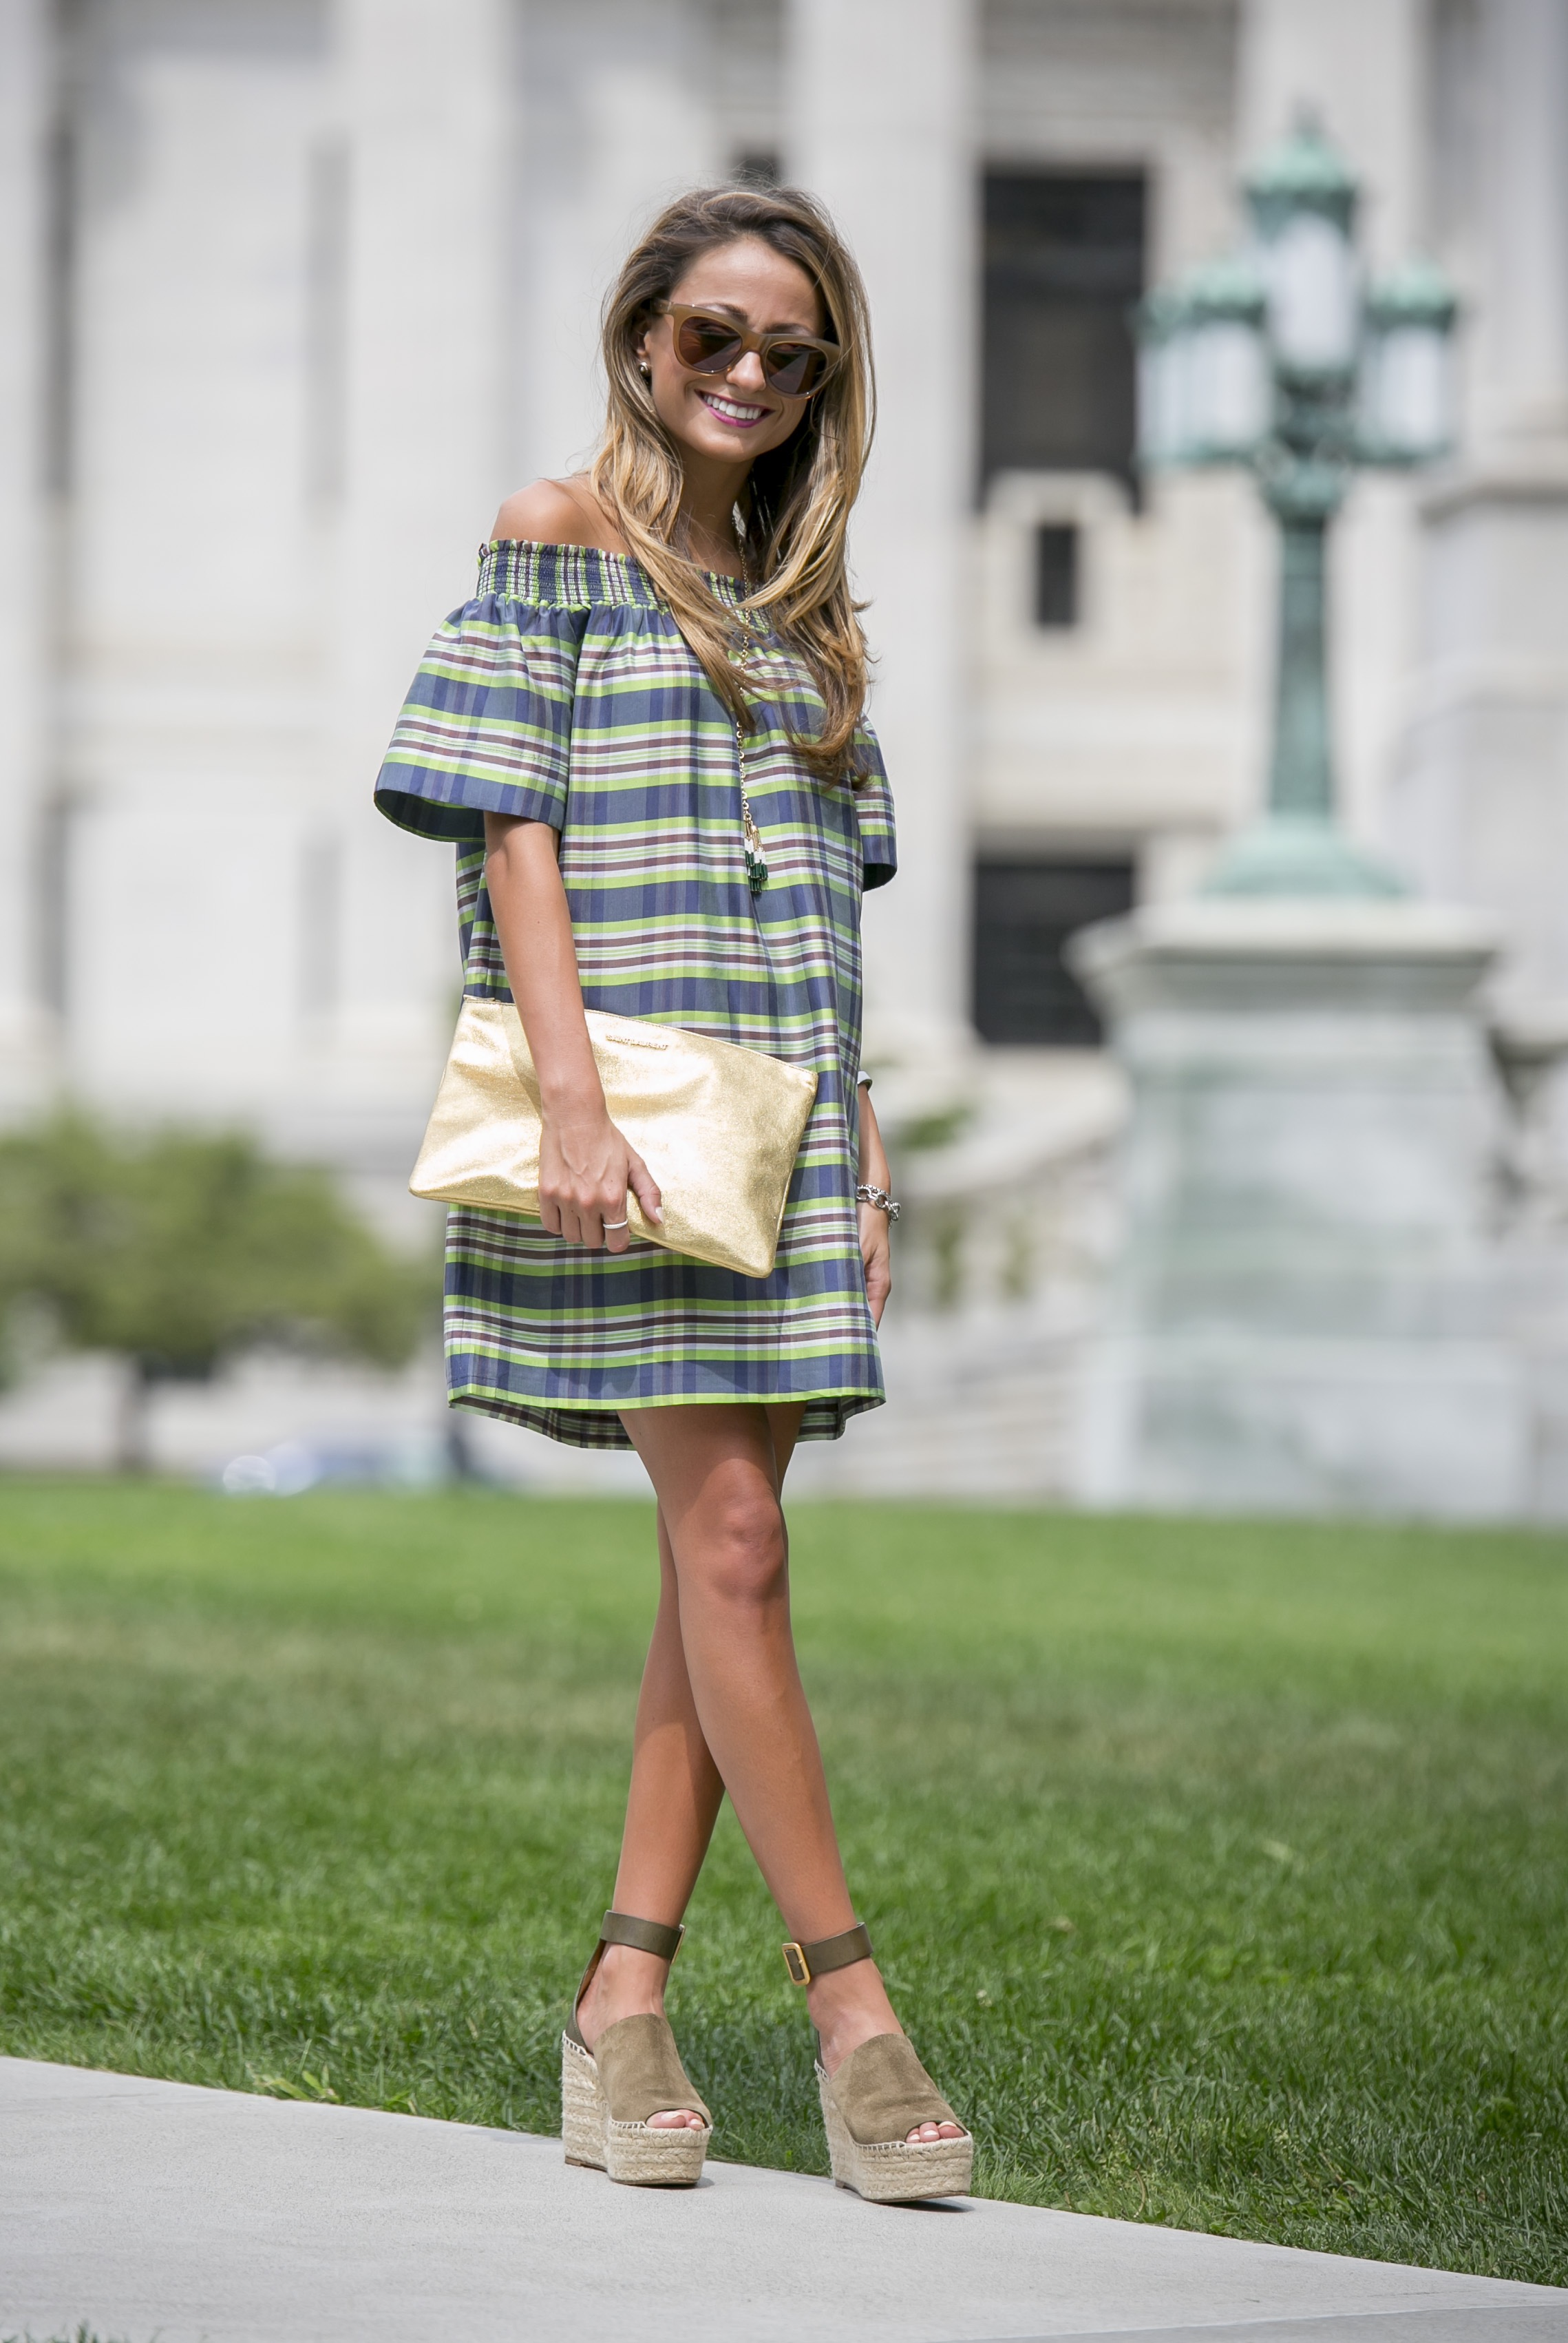 madras off of the shoulder dress paired with dramatic sunglasses and chloe espadrille wedges